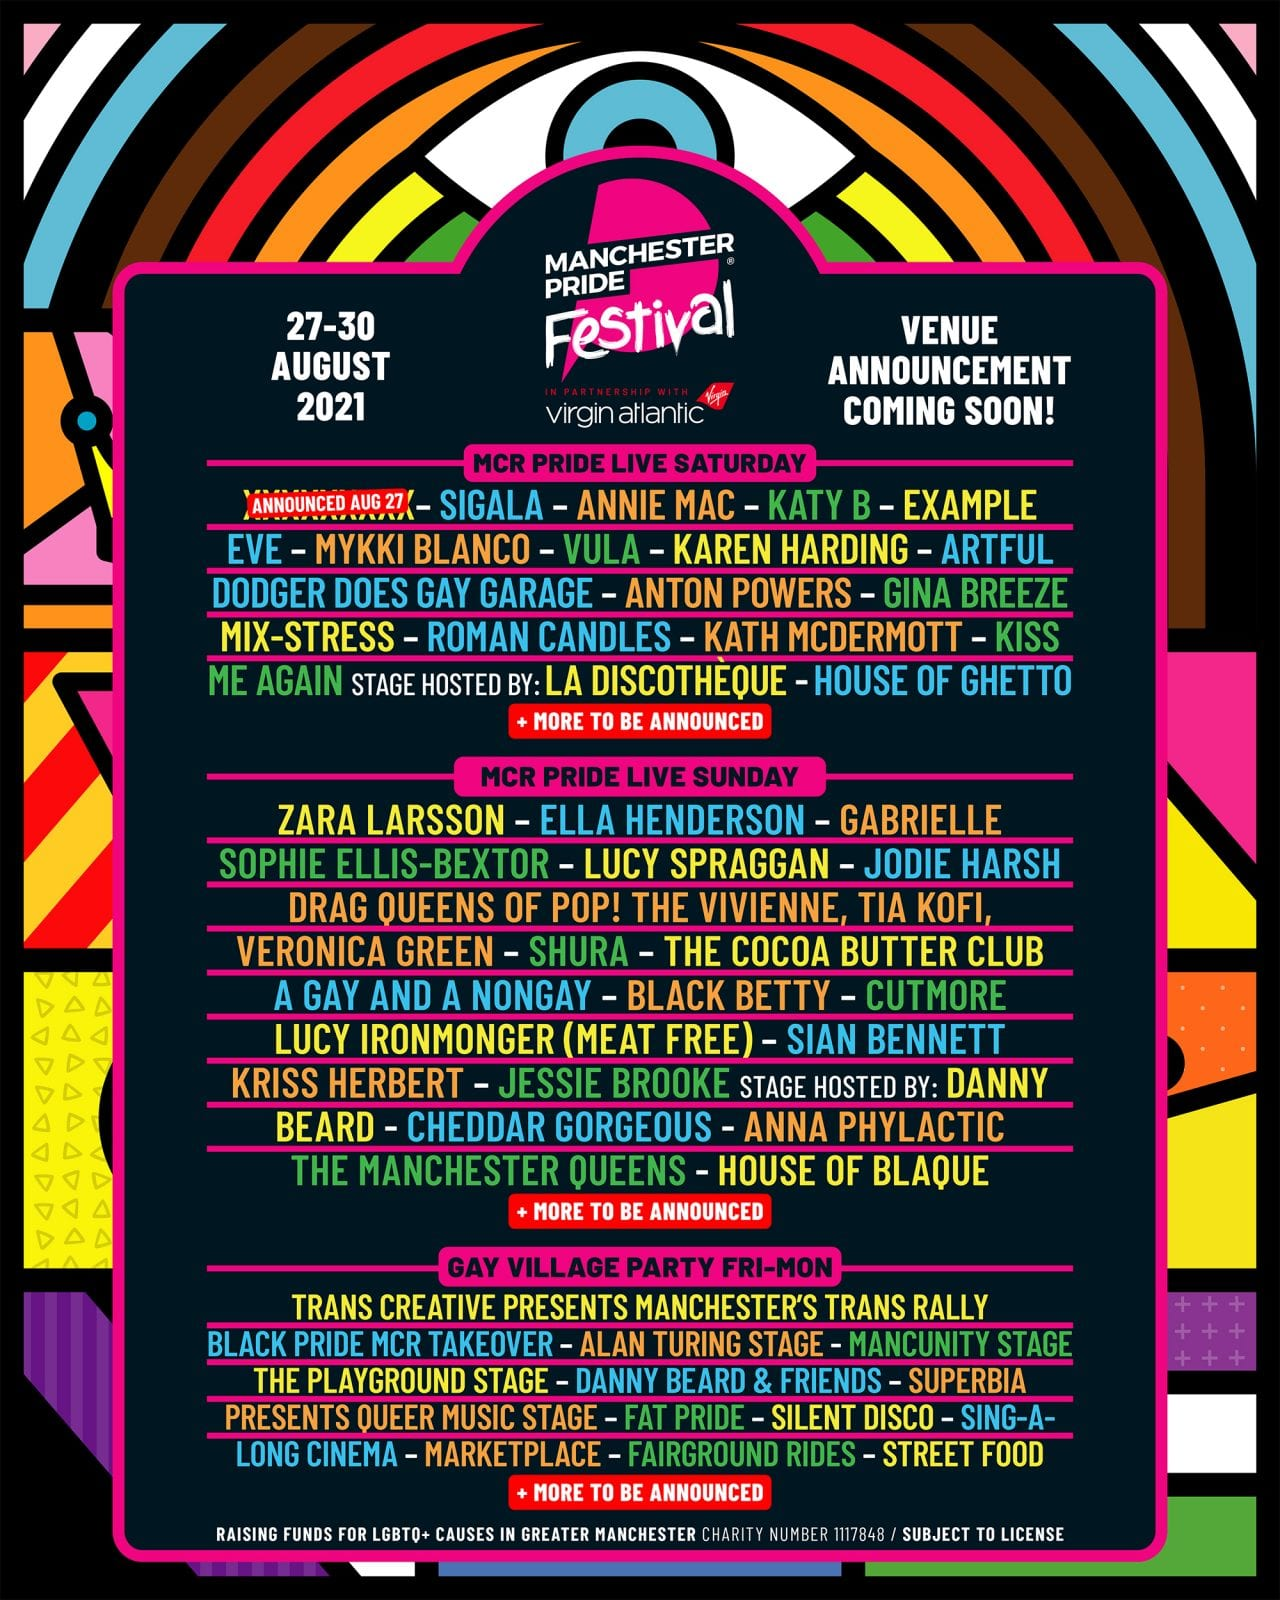 Manchester Pride 2021 lineup unveiled – with 40+ UK and international acts on the bill, The Manc